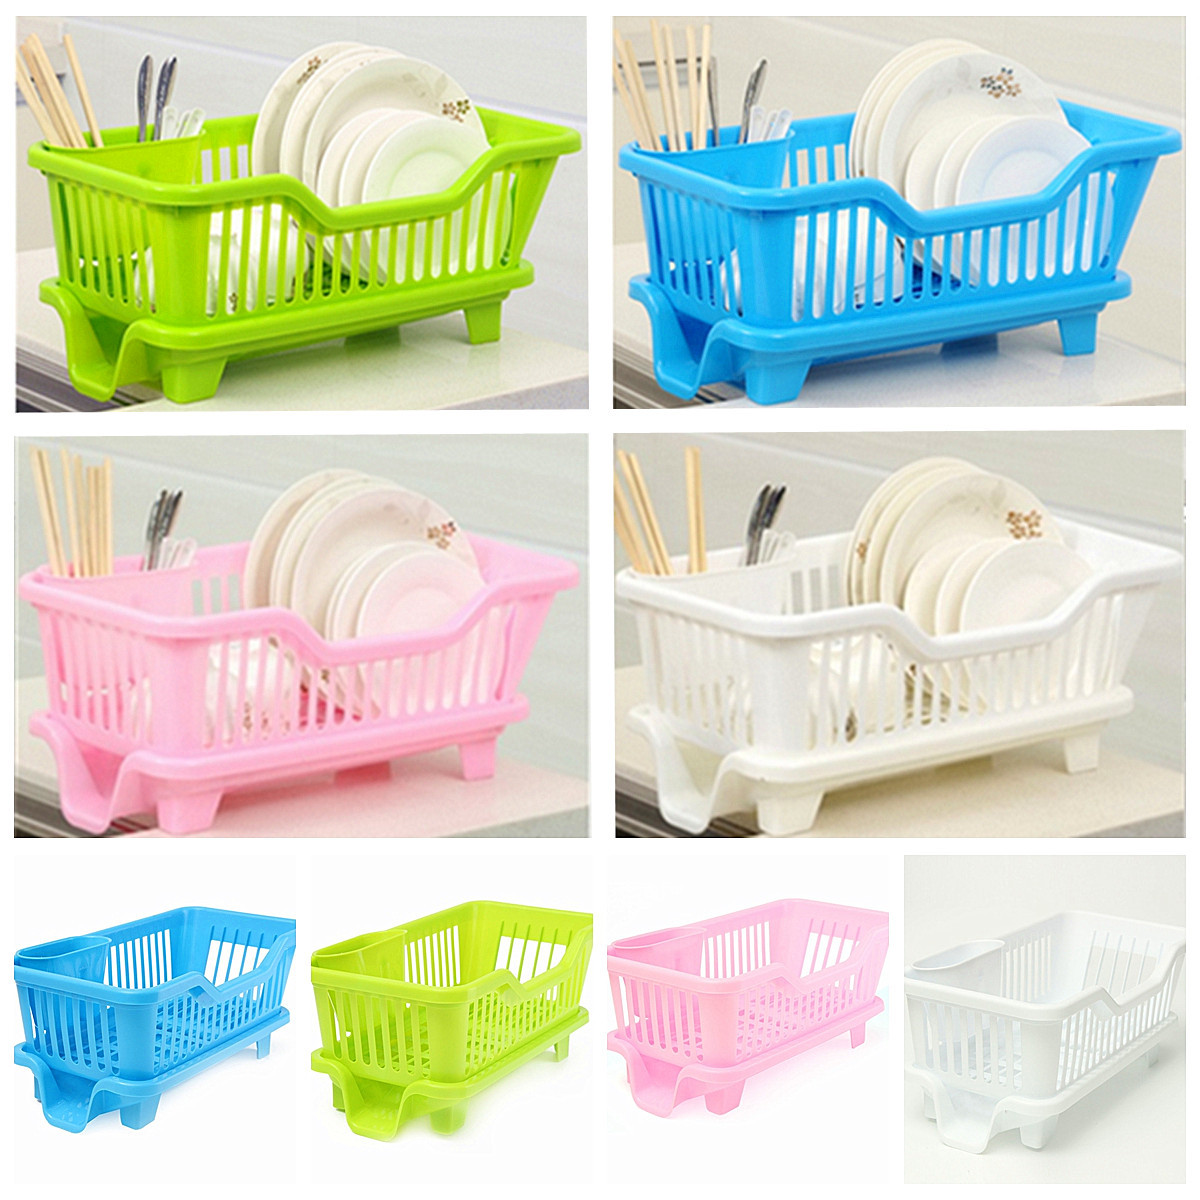 Kitchen Drying Rack Dish Cup Drainer Washing Cup Plate Holder Basket Cutlery Organizer Tray 17.5 x 9.4 x 7 CM